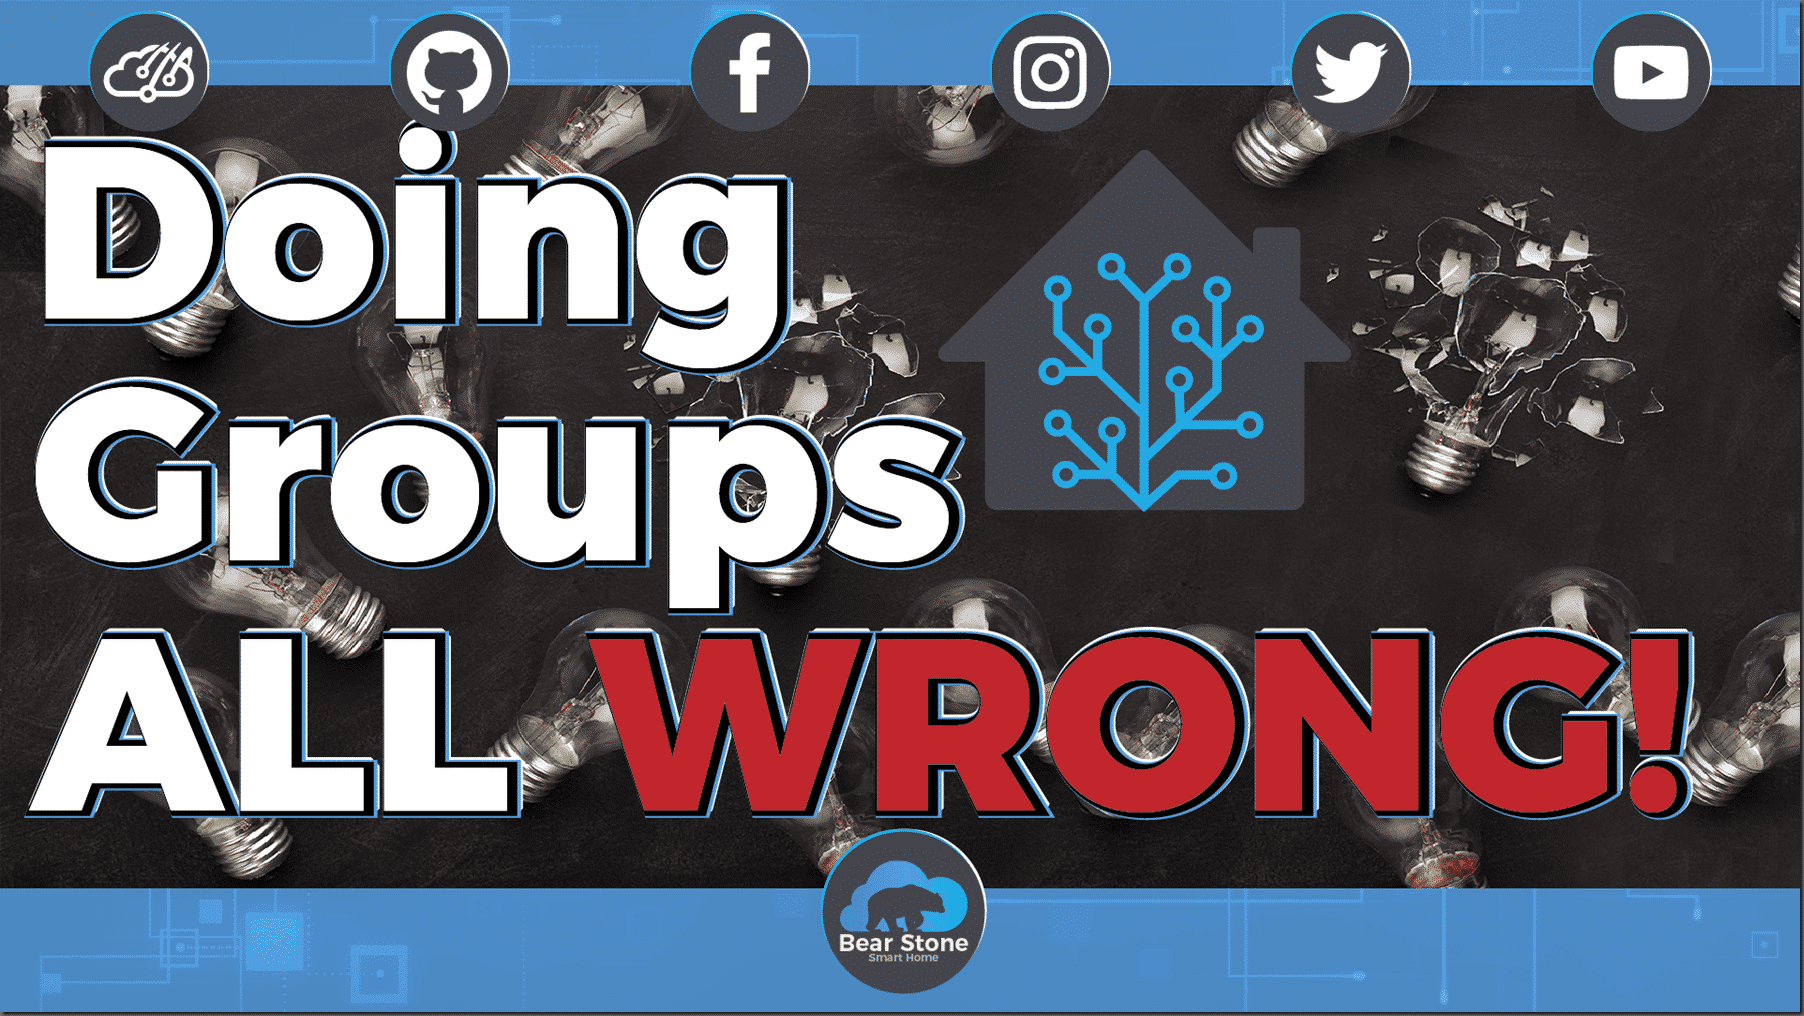 Your Groups are all Wrong!